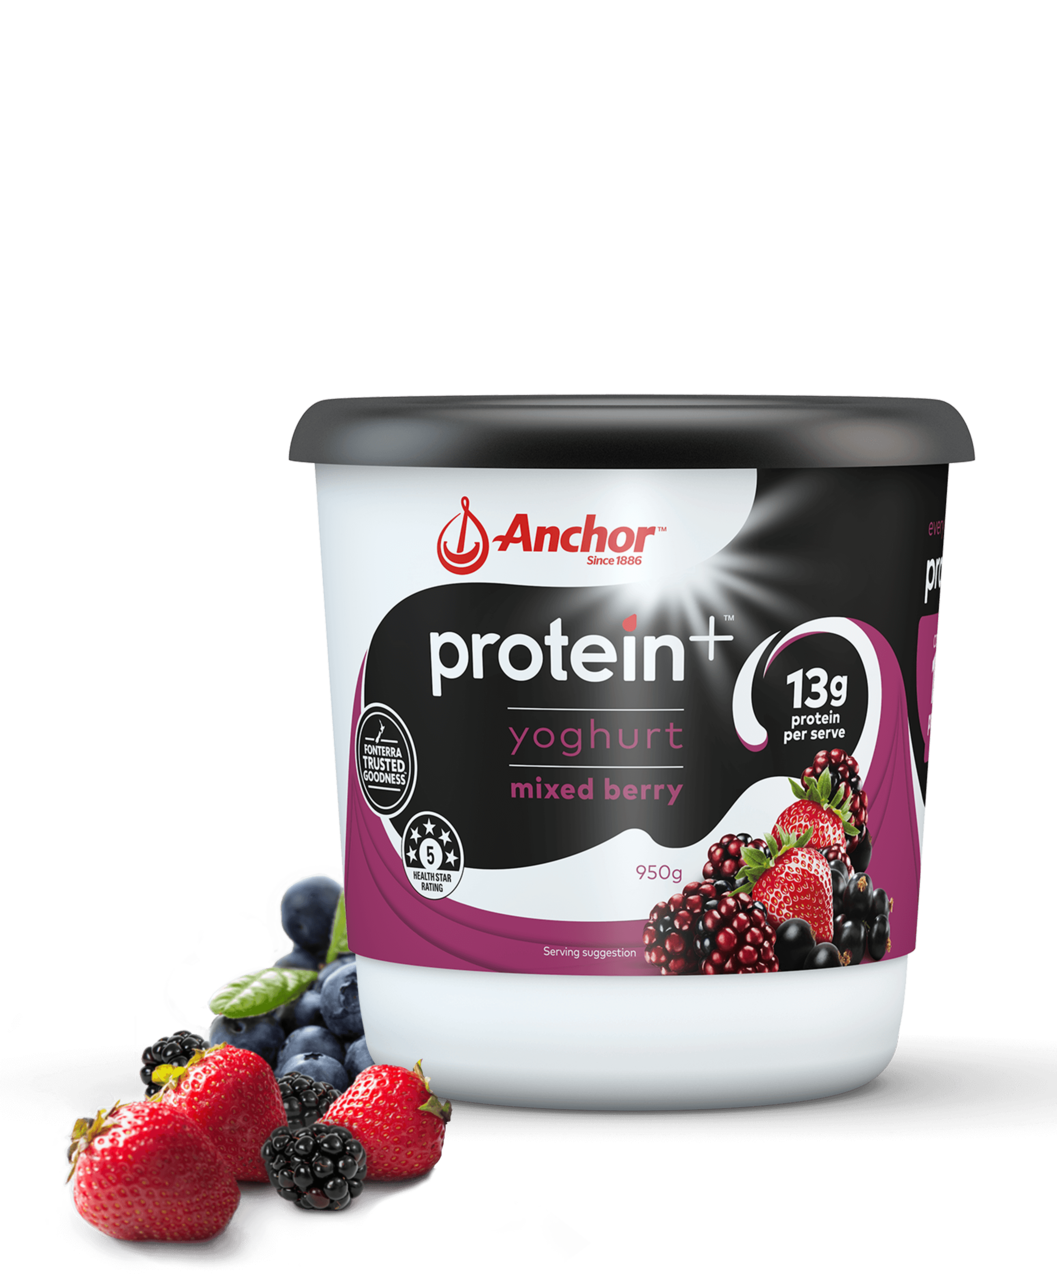 Anchor Protein+ Moxed Berry Yoghurt 950g pack